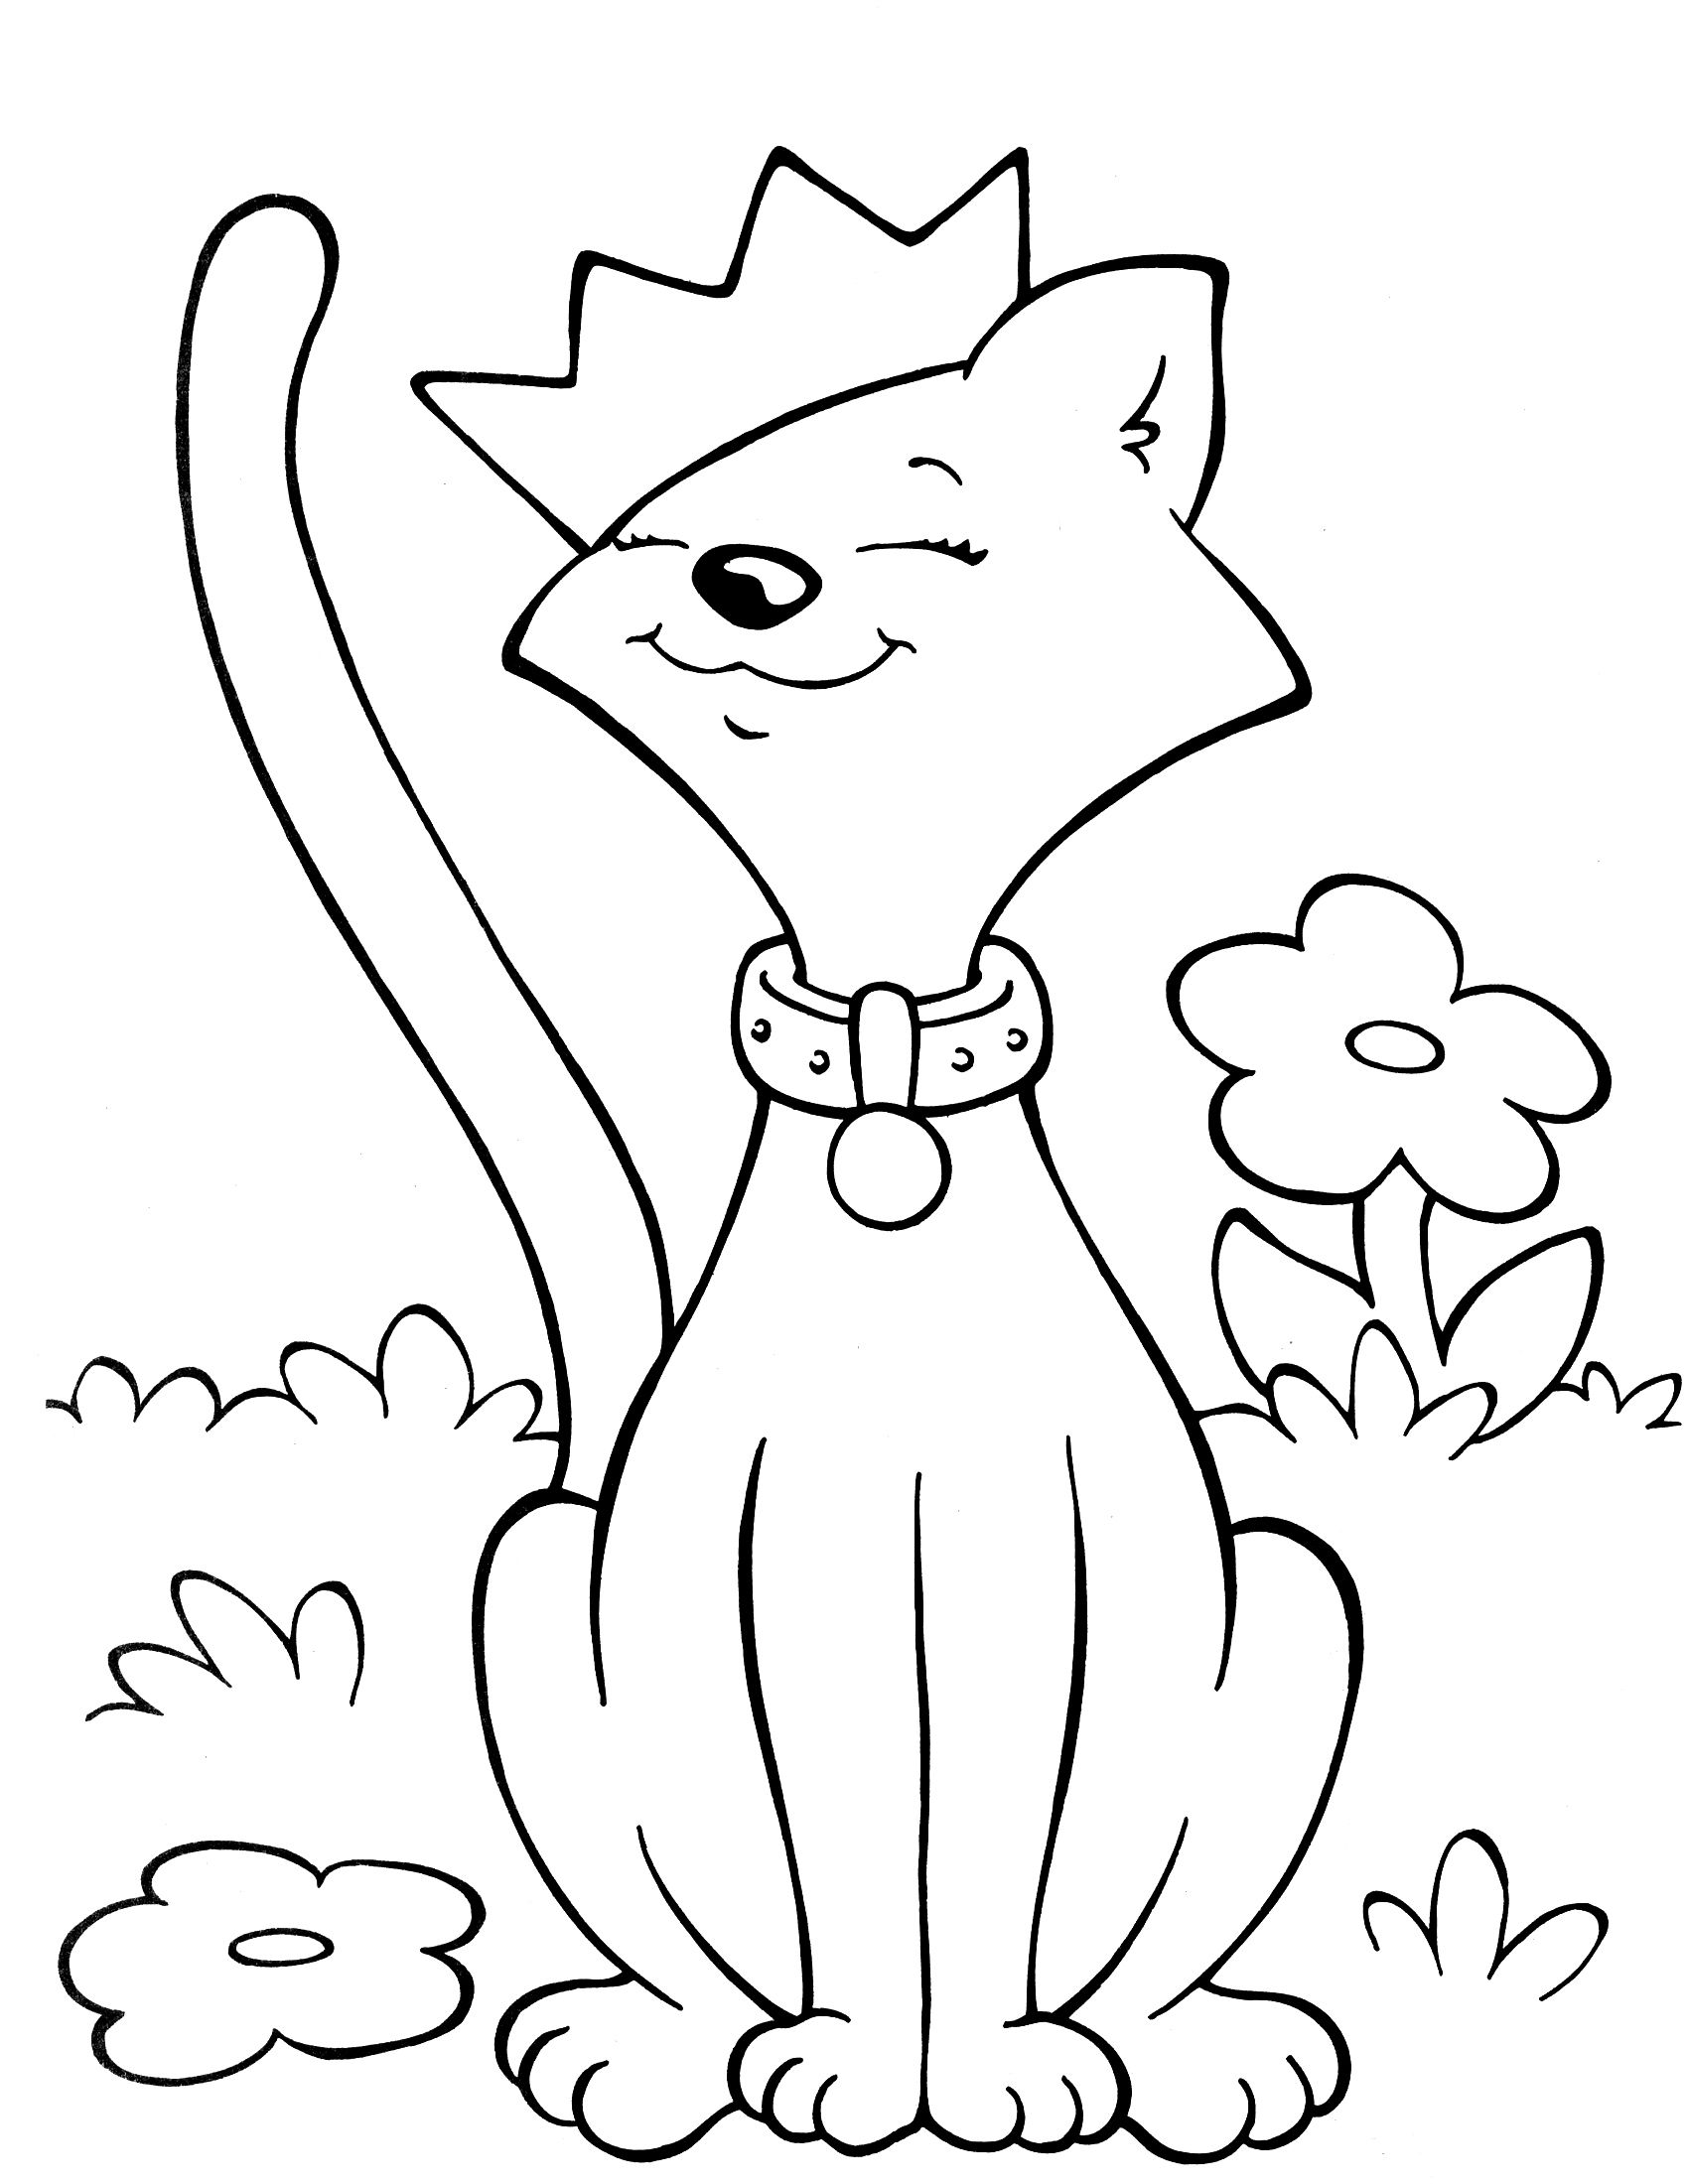 coloring pages crayola # 8